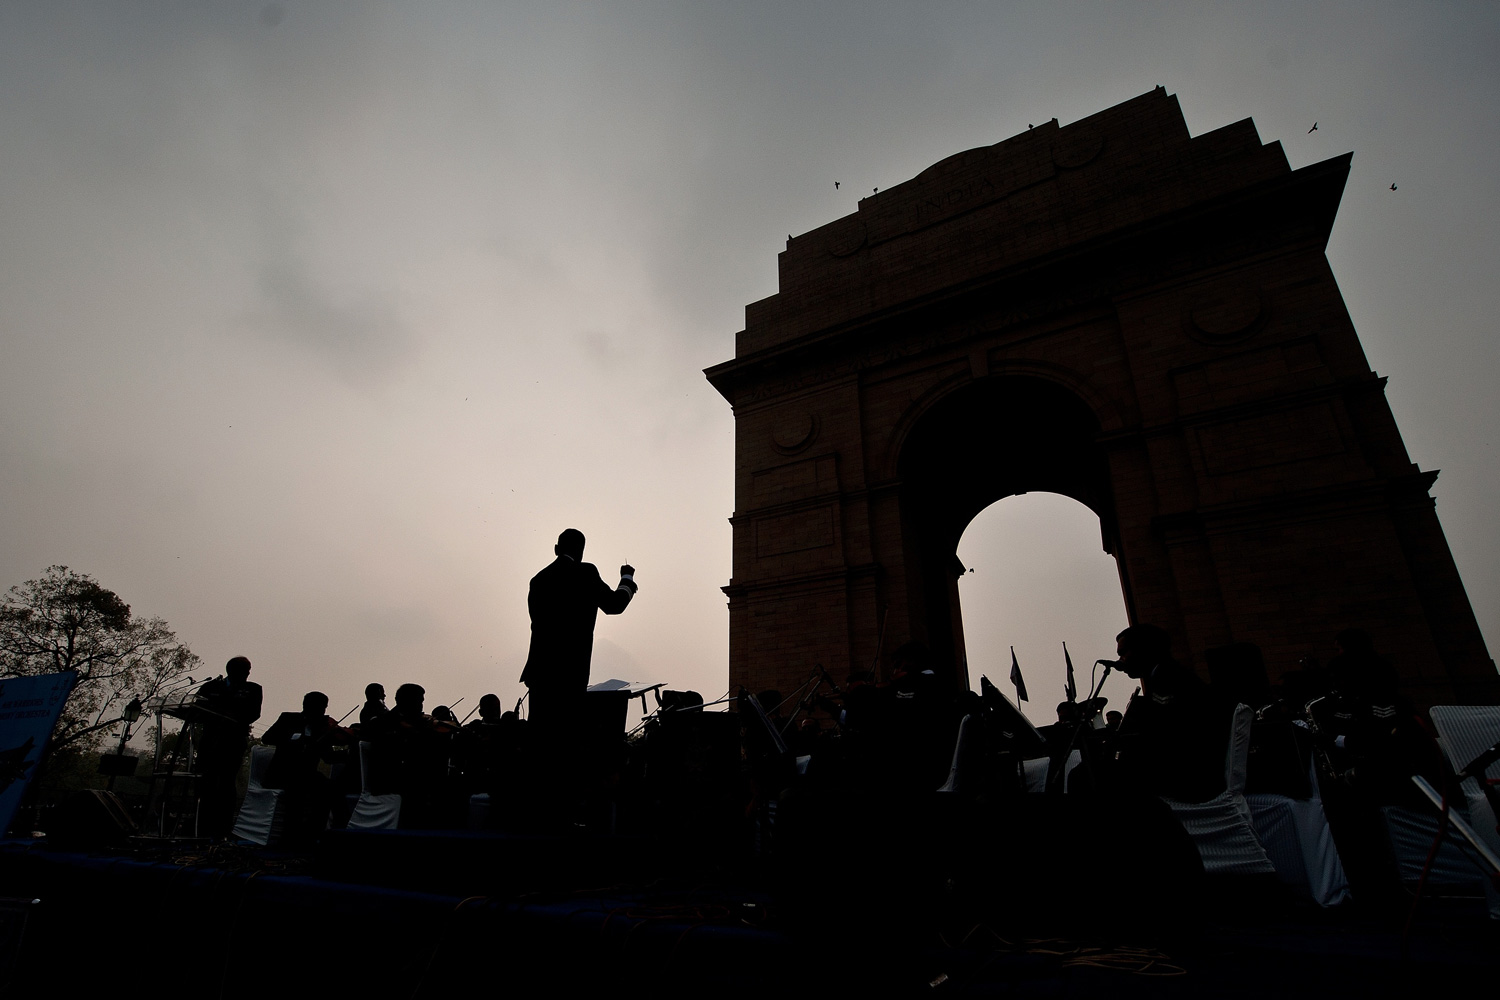 January 7, 2012. Indian Air Force Band members are silhouetted as they perform for the public at the India Gate in New Delhi.